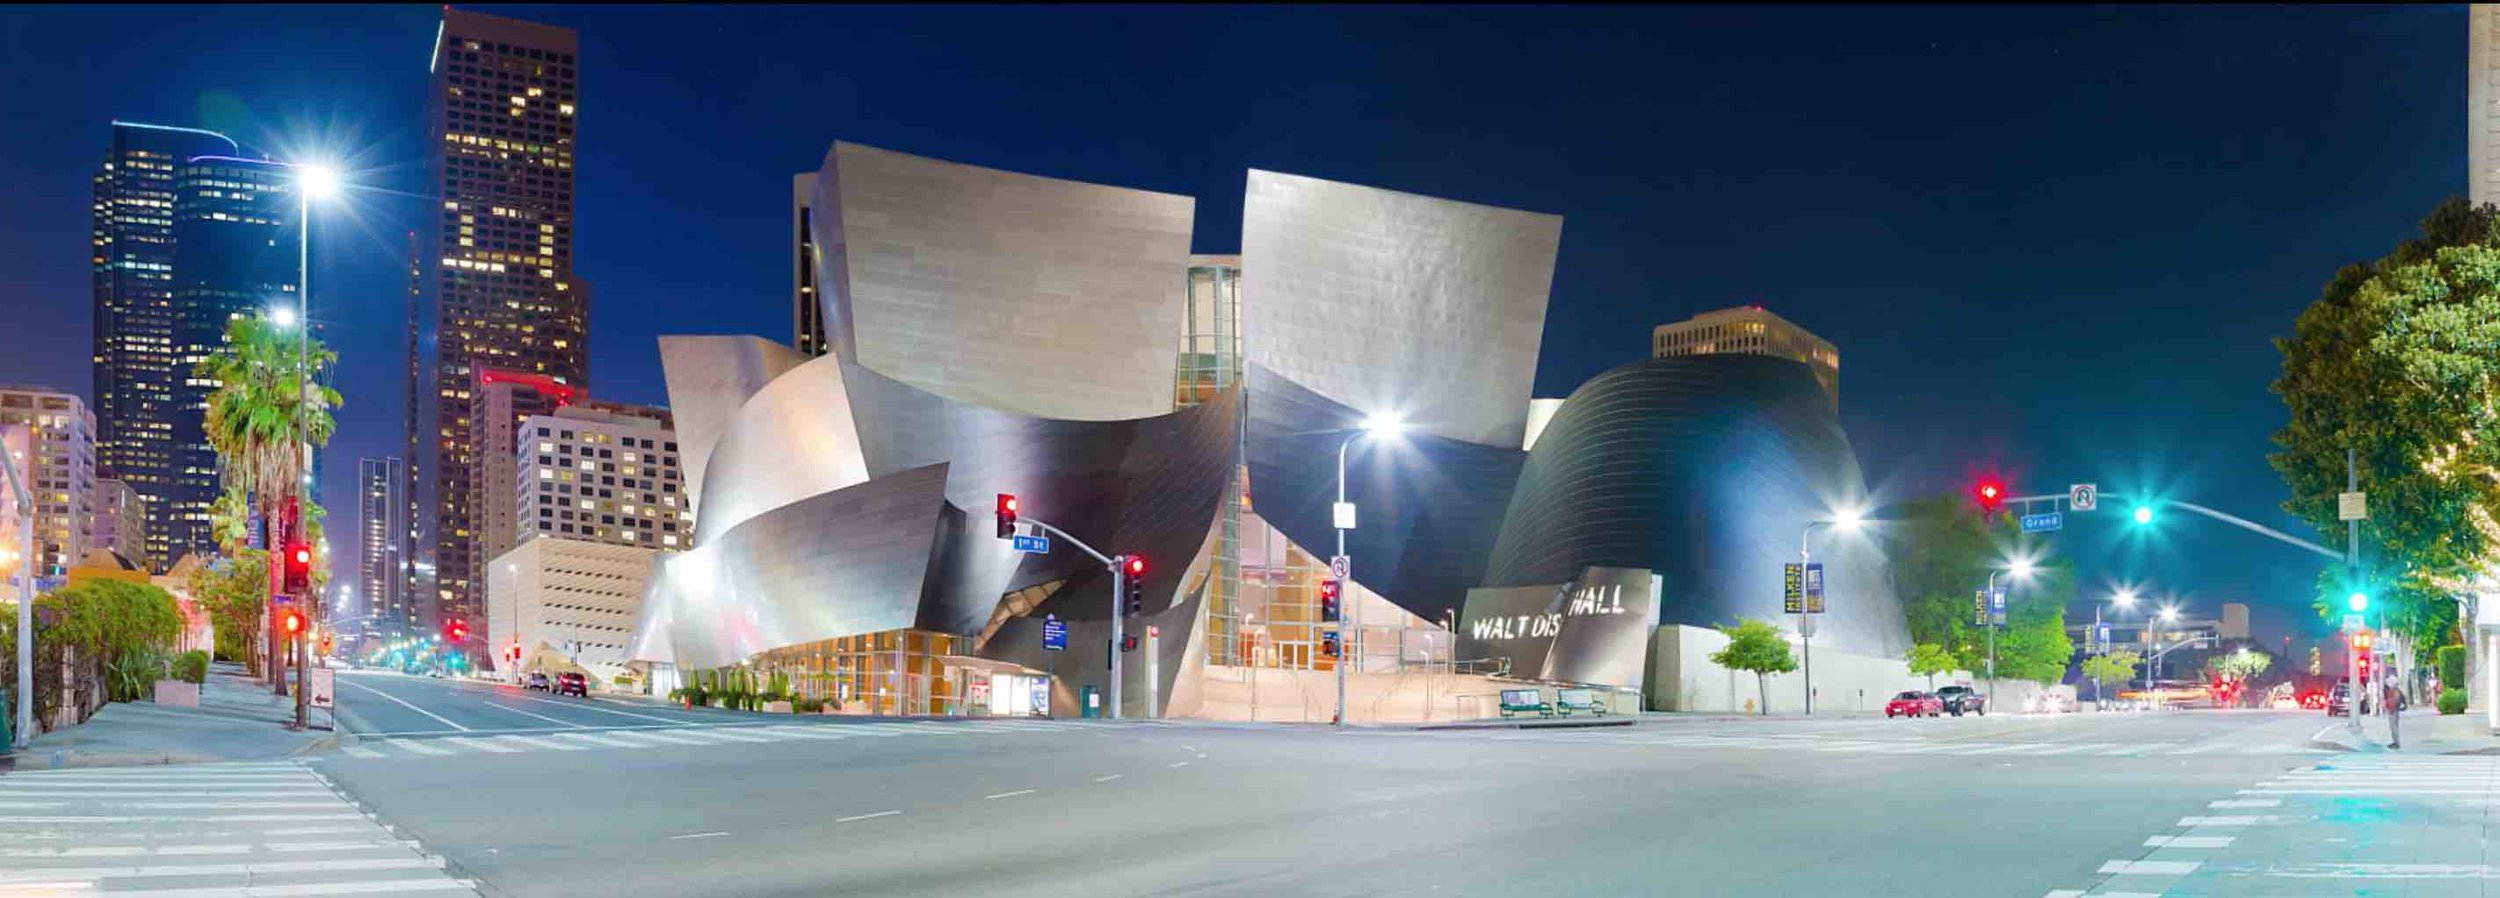 Walk off lunch by heading to the curvy, metal Gehry-designed Walt Disney Concert Hall and the Cathedral of Our Lady of the Angels, the new church — who knew they were still building churches? — that redefines Catholic grandiosity by using restraint.